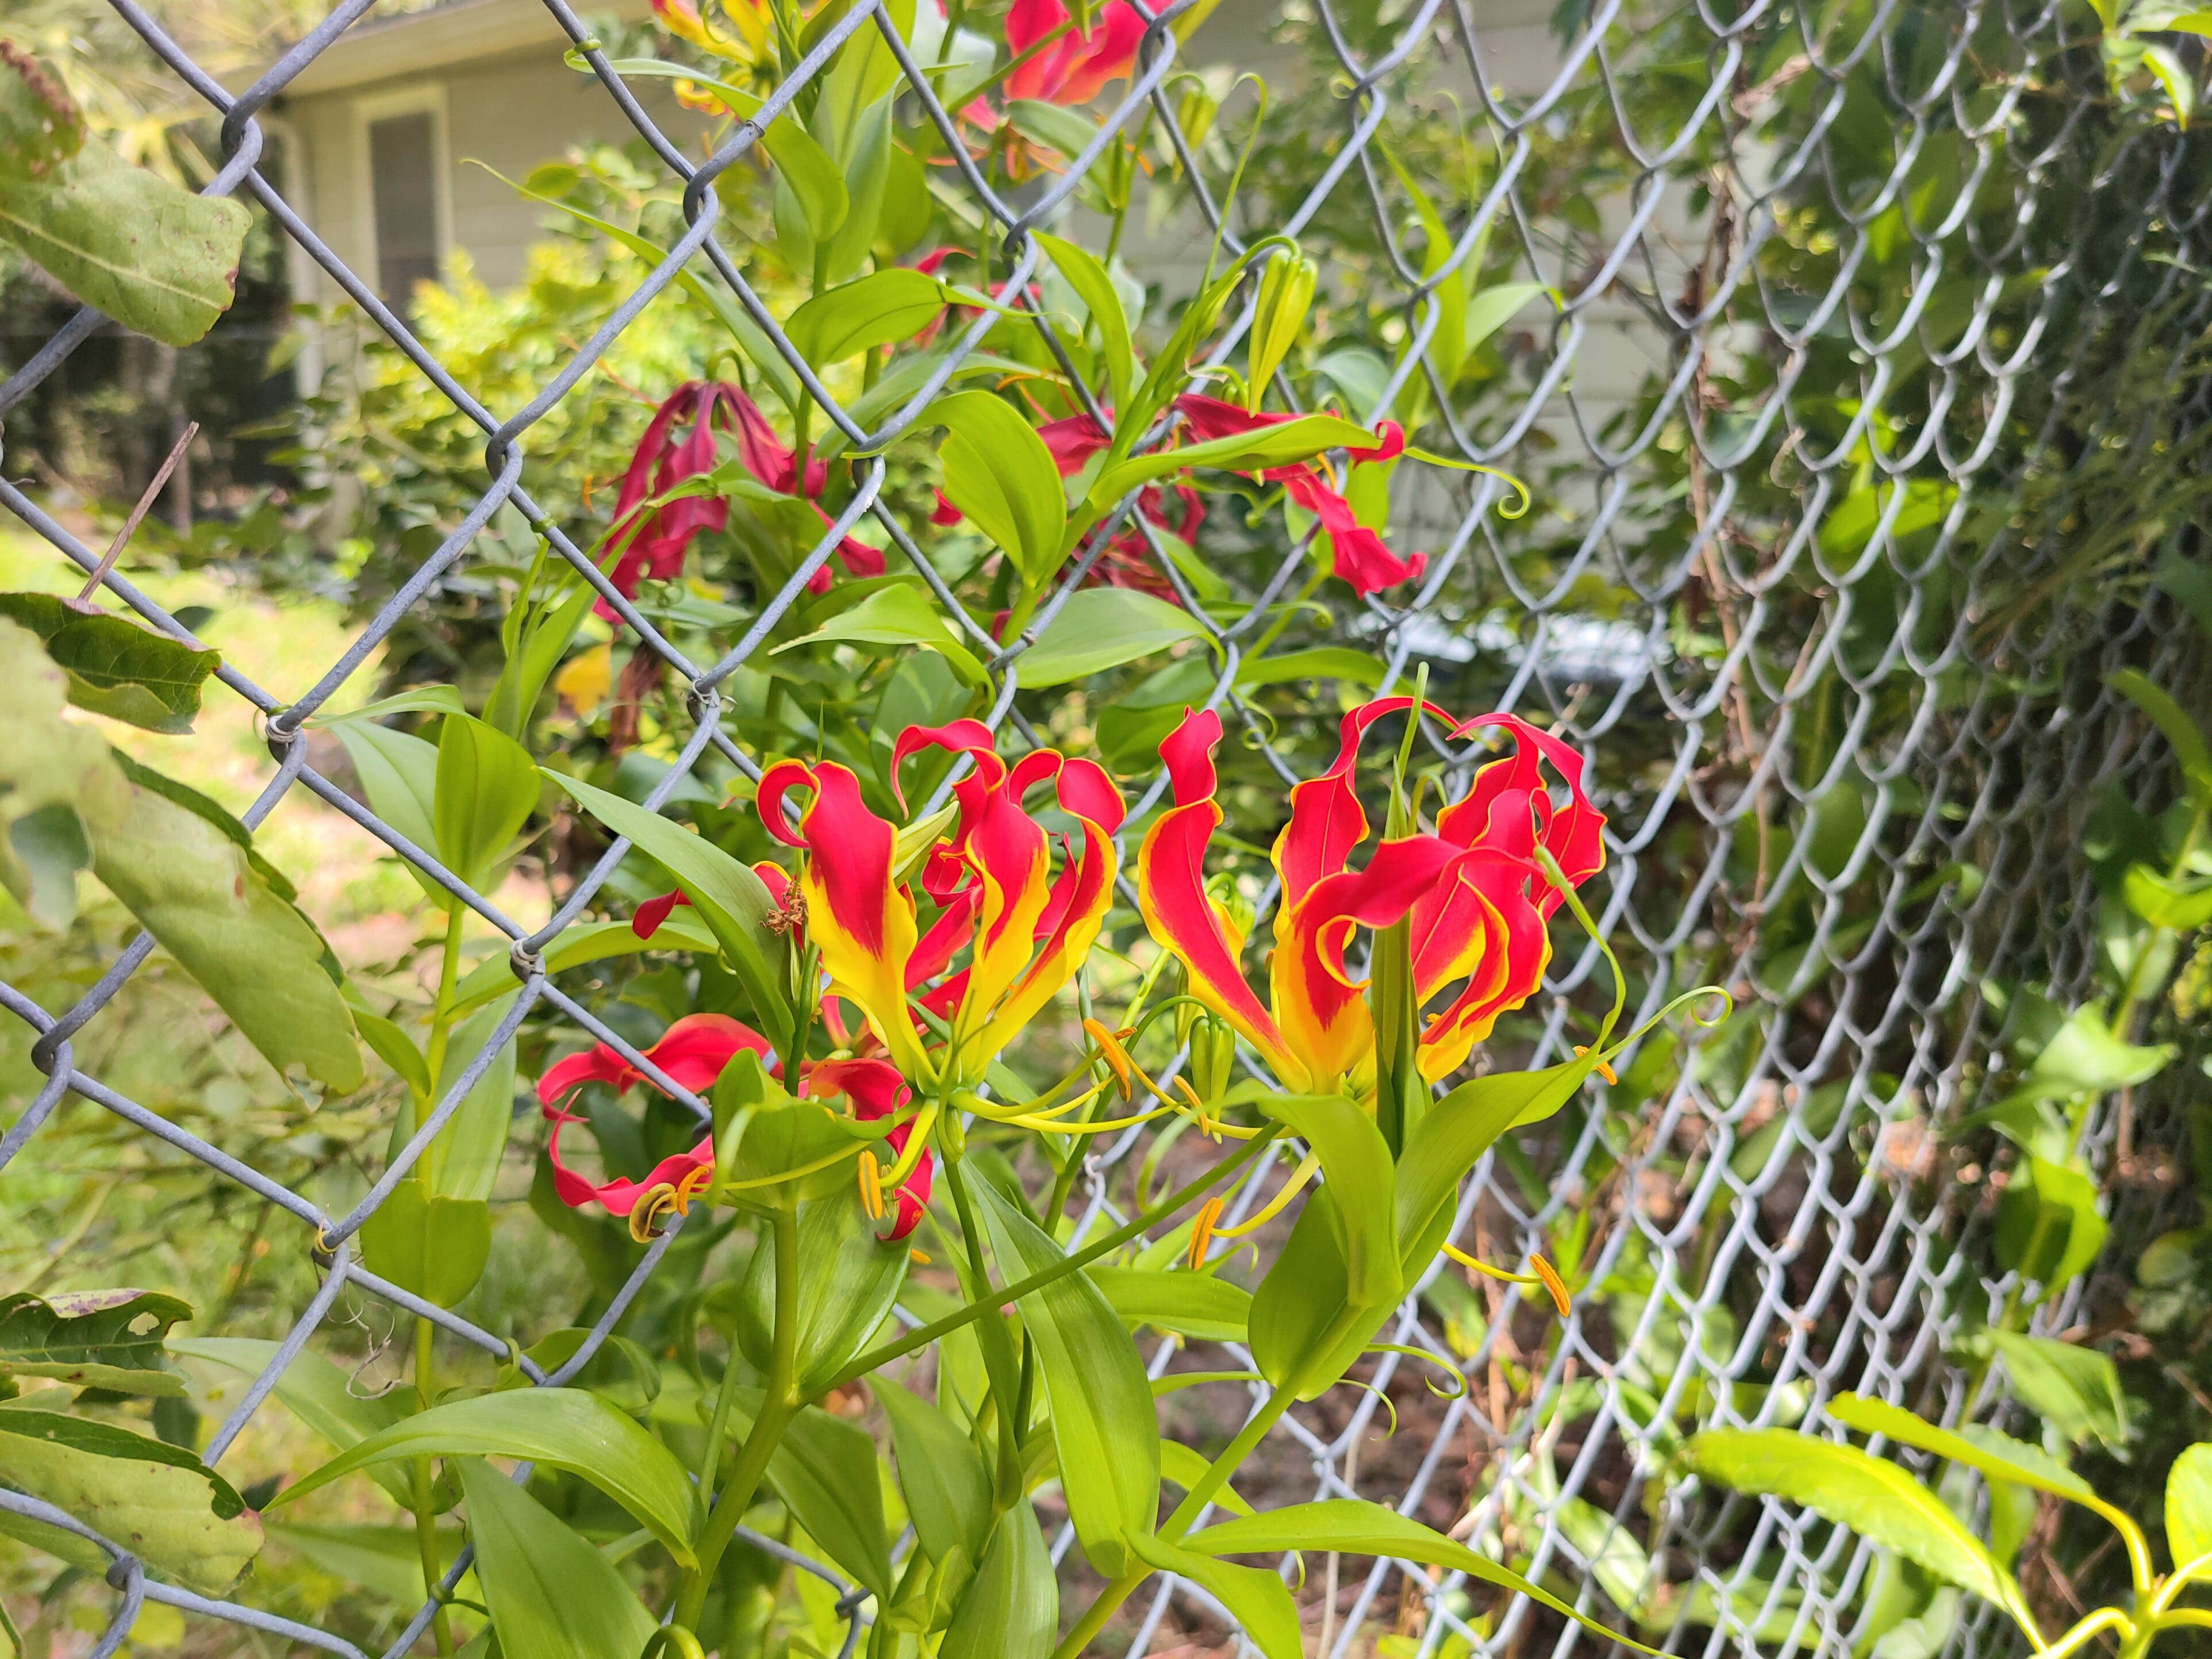 A photo of bright red flowers.